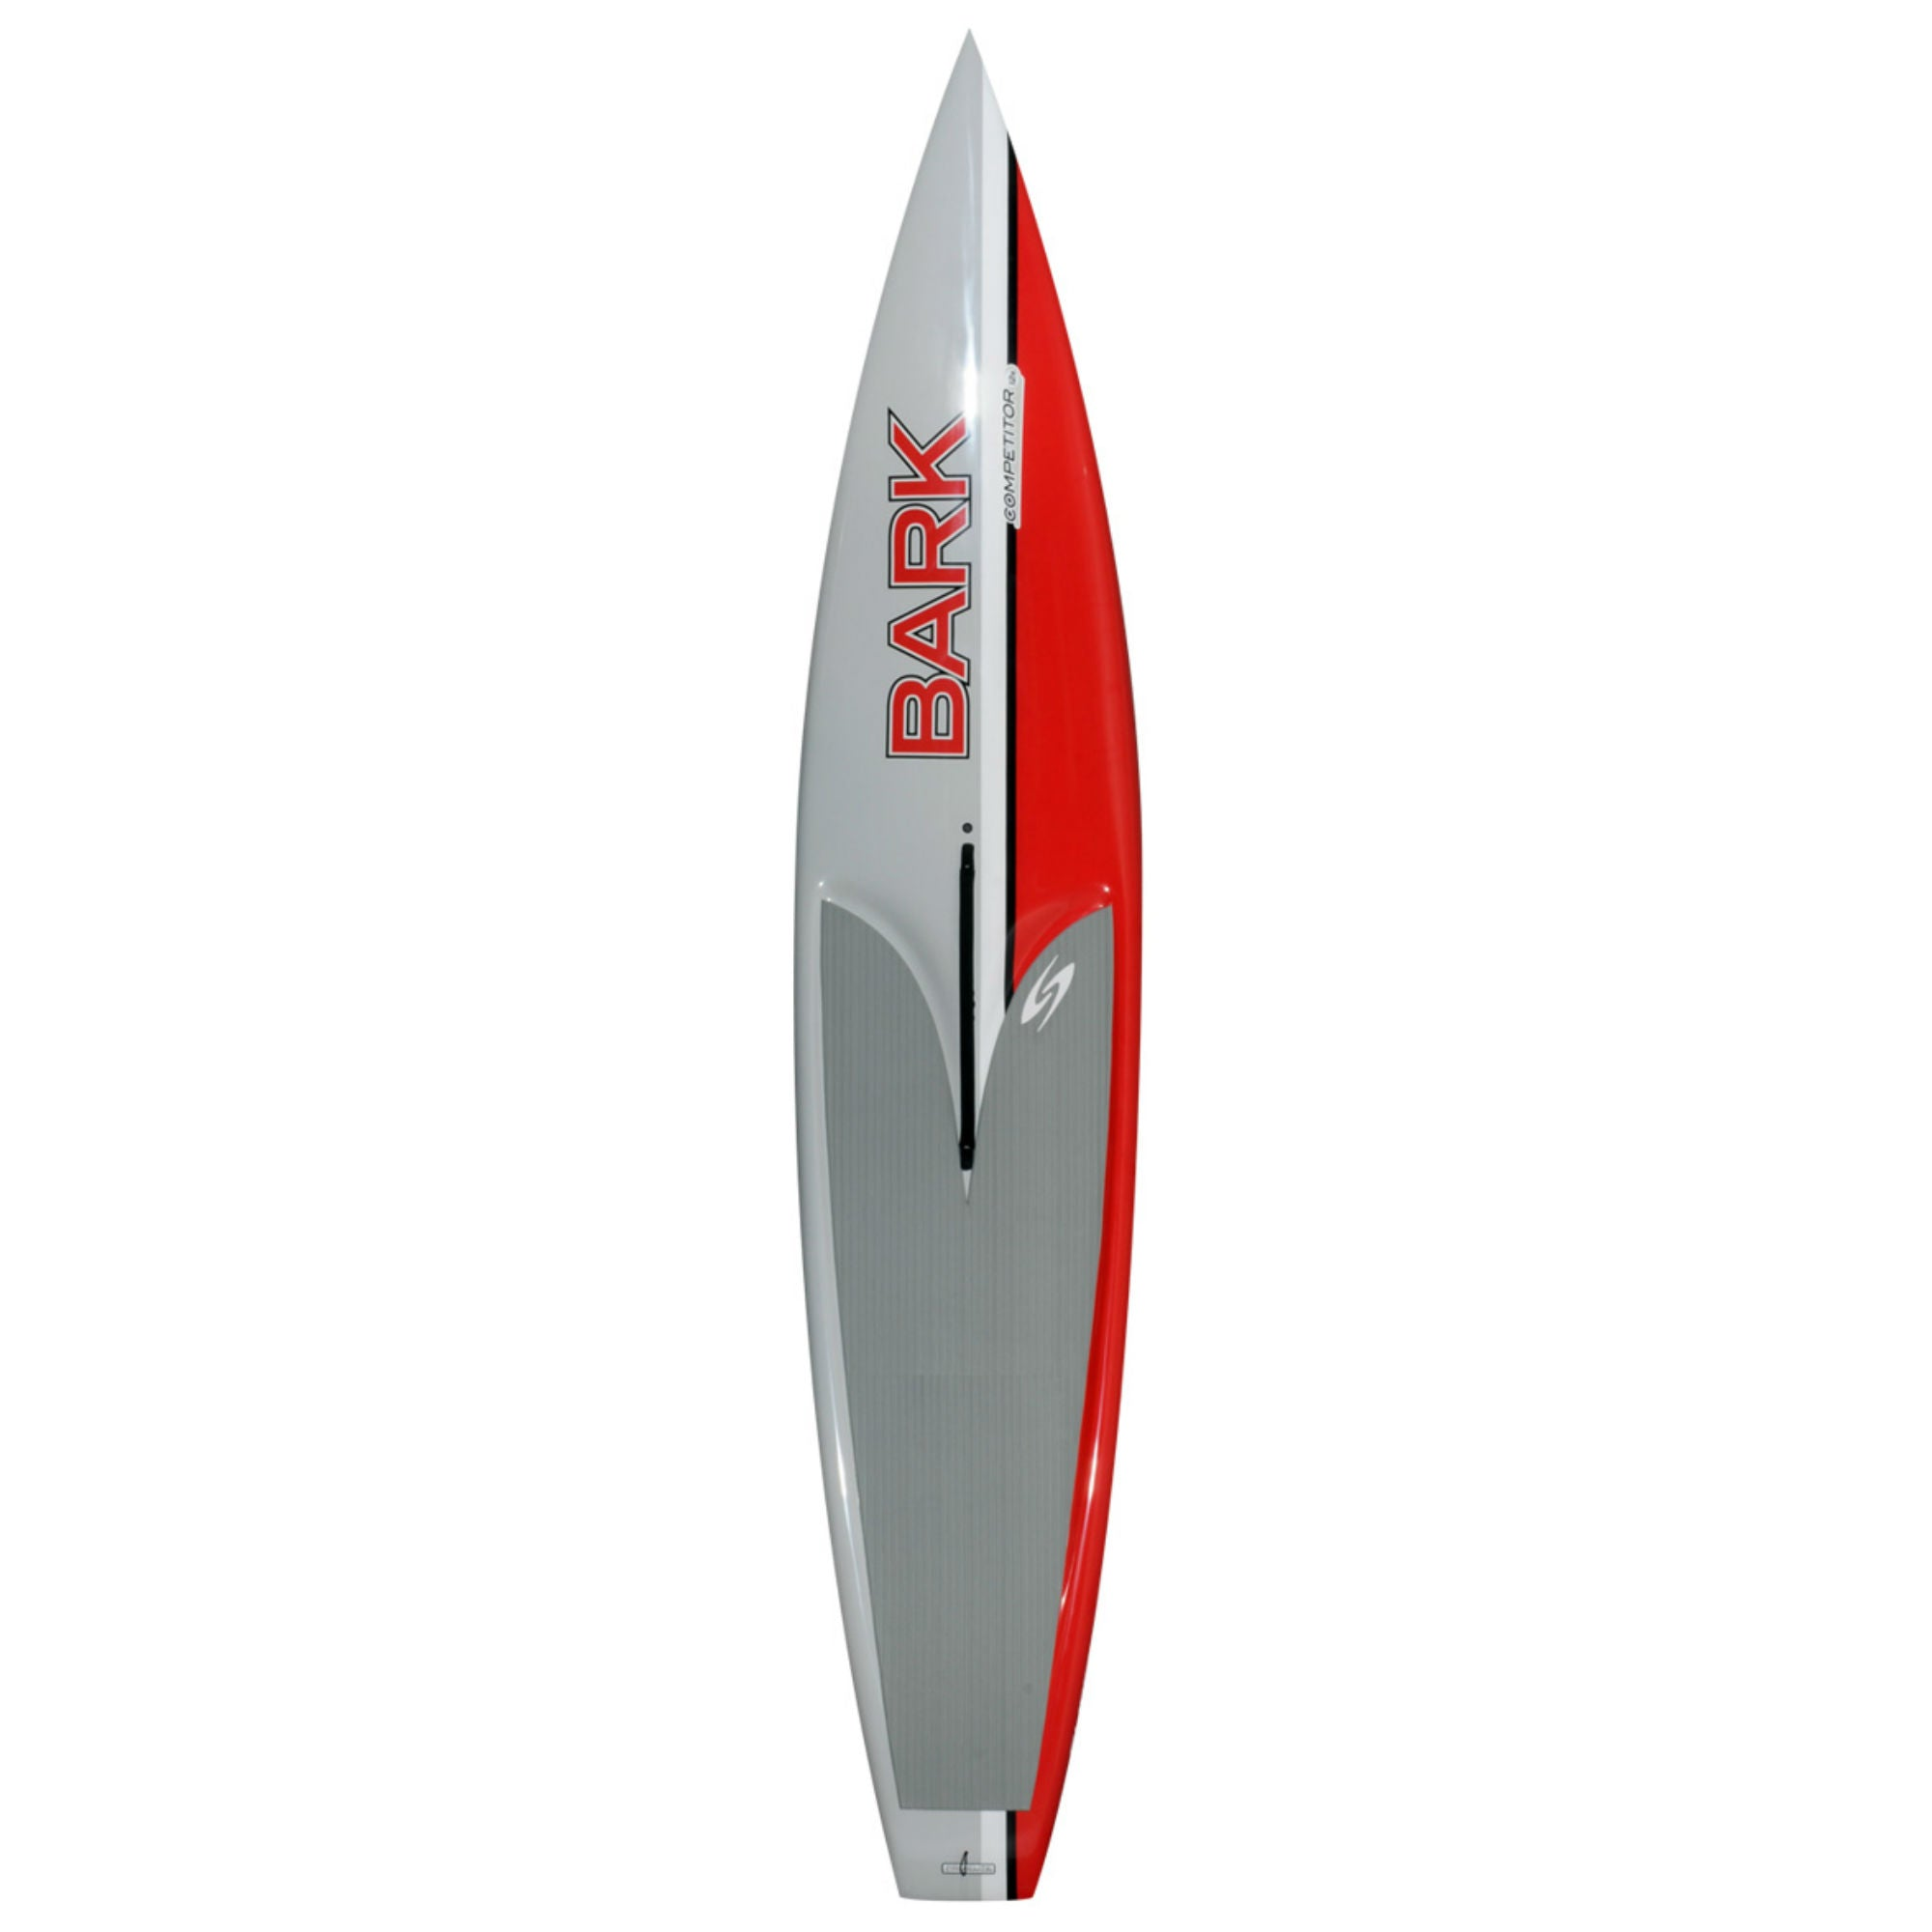 Surftech 12'6 Bark Competitor Pro Elite